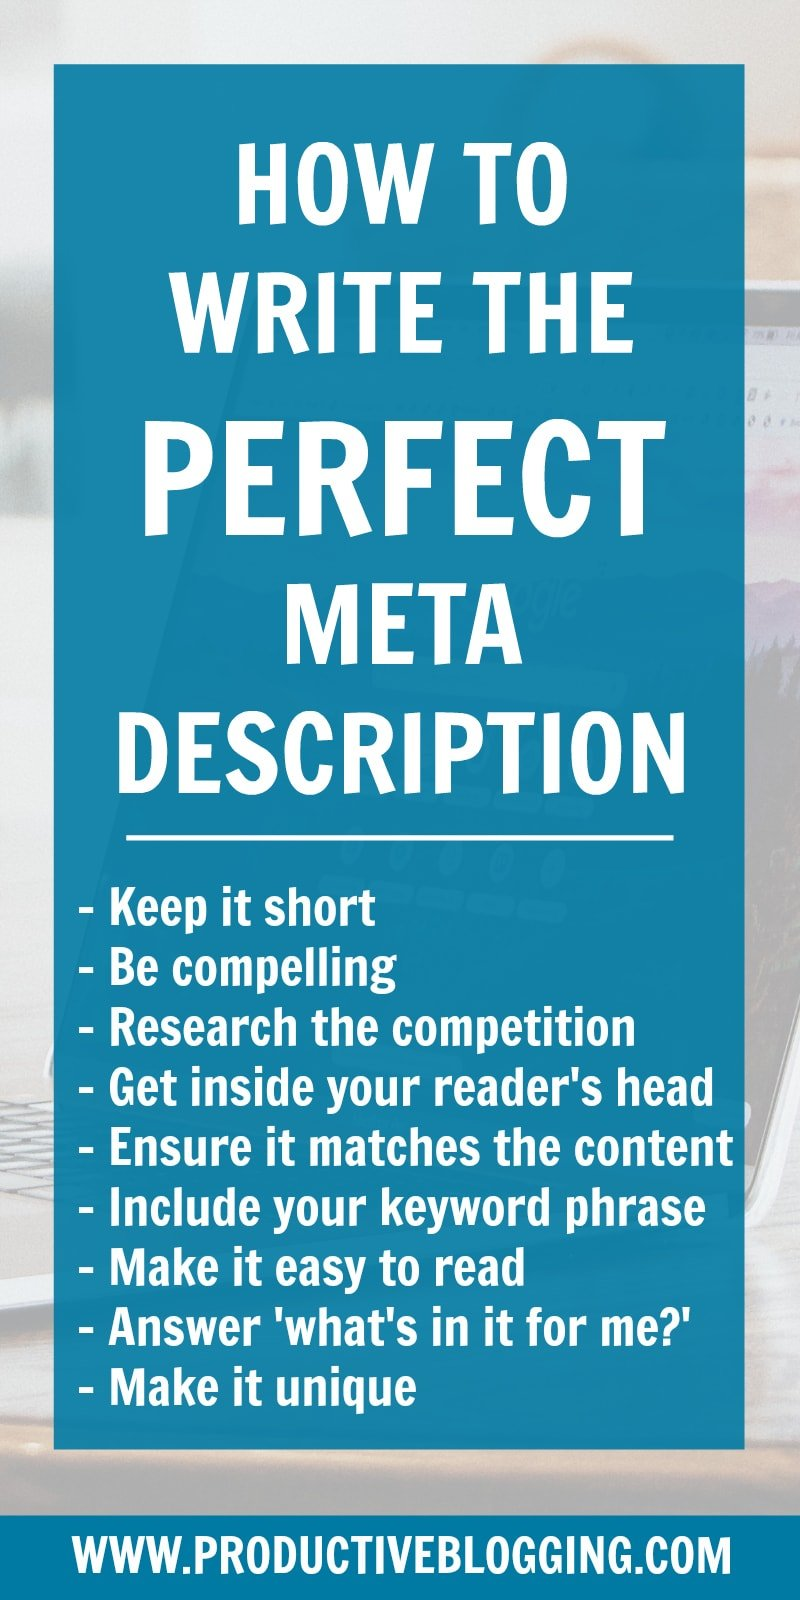 A good meta description can have a dramatic effect on your SEO and consequently your blog traffic. But what exactly is a meta description, and how does it affect your SEO? Find out how to write the perfect meta description to maximise search engine traffic and grow your blog! #metadescription #SEOforbloggers #SEOforbeginners #beginnersSEO #SEO #SEOtips #Yoast #searchengineoptimization #keywords #growyourblog #bloggrowth #bloggingtips #blogging #bloggers #blogsmarternotharder #productiveblogging